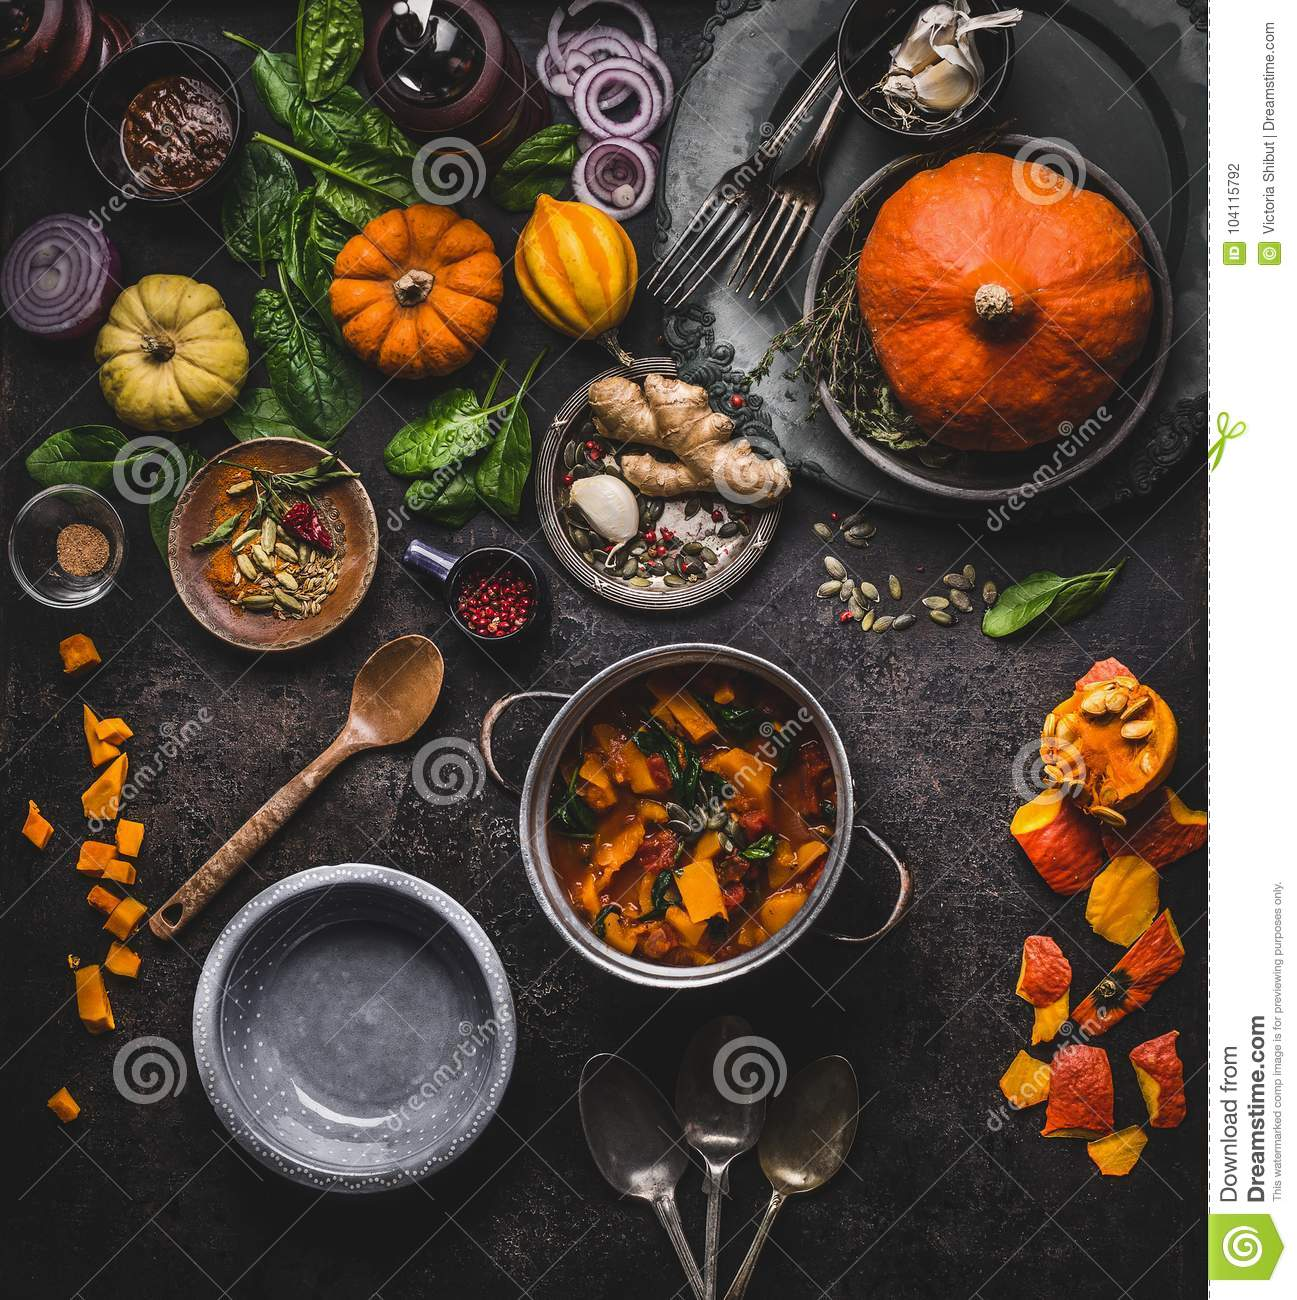 Autumn and winter cooking and eating with pumpkin dishes. Vegetarian stew in cooking pot with spoon and vegetables ingredients on